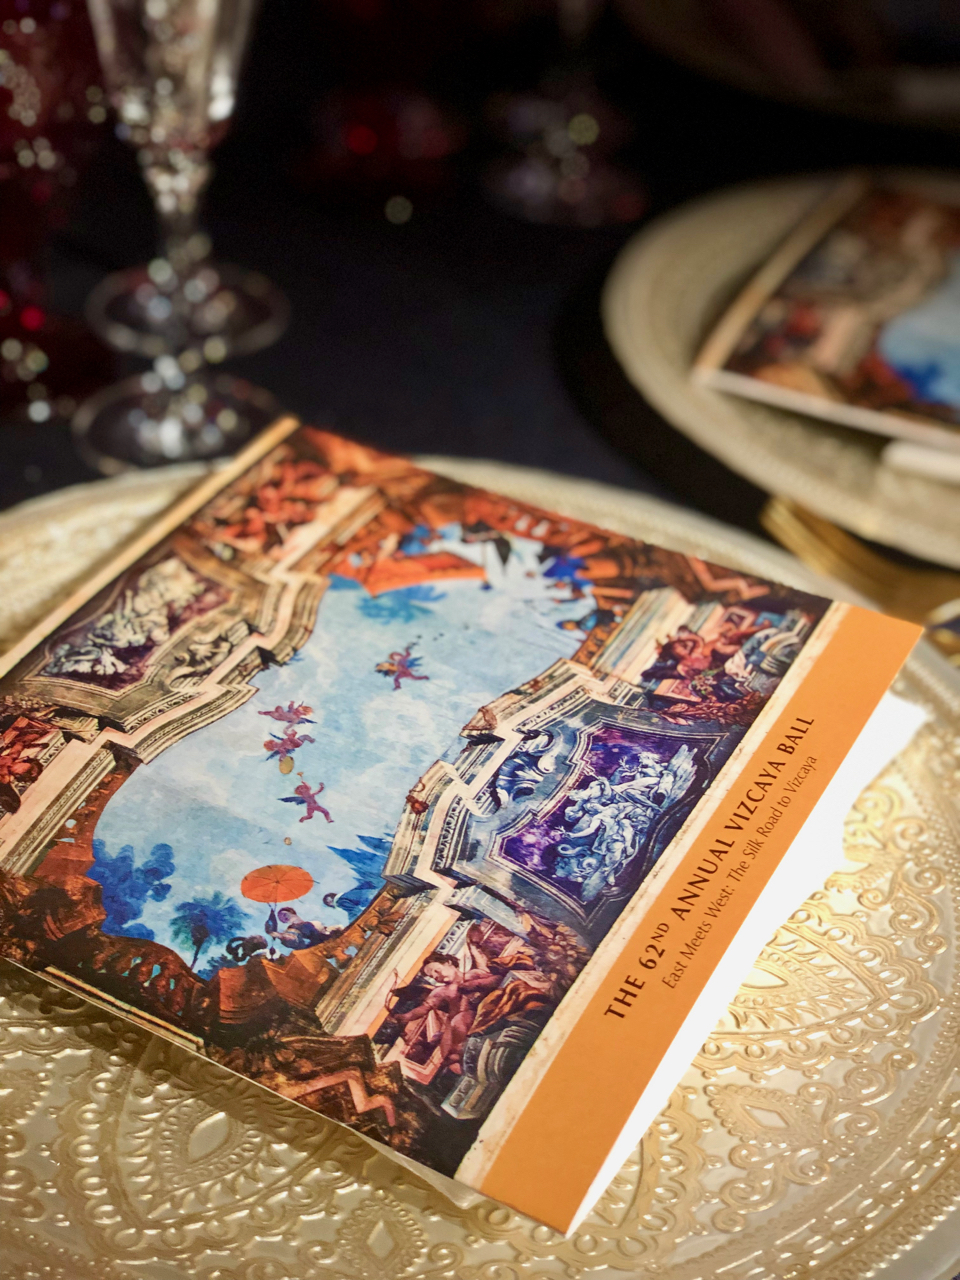 - November 17th, 2018: The 62nd Annual Vizcaya Ball